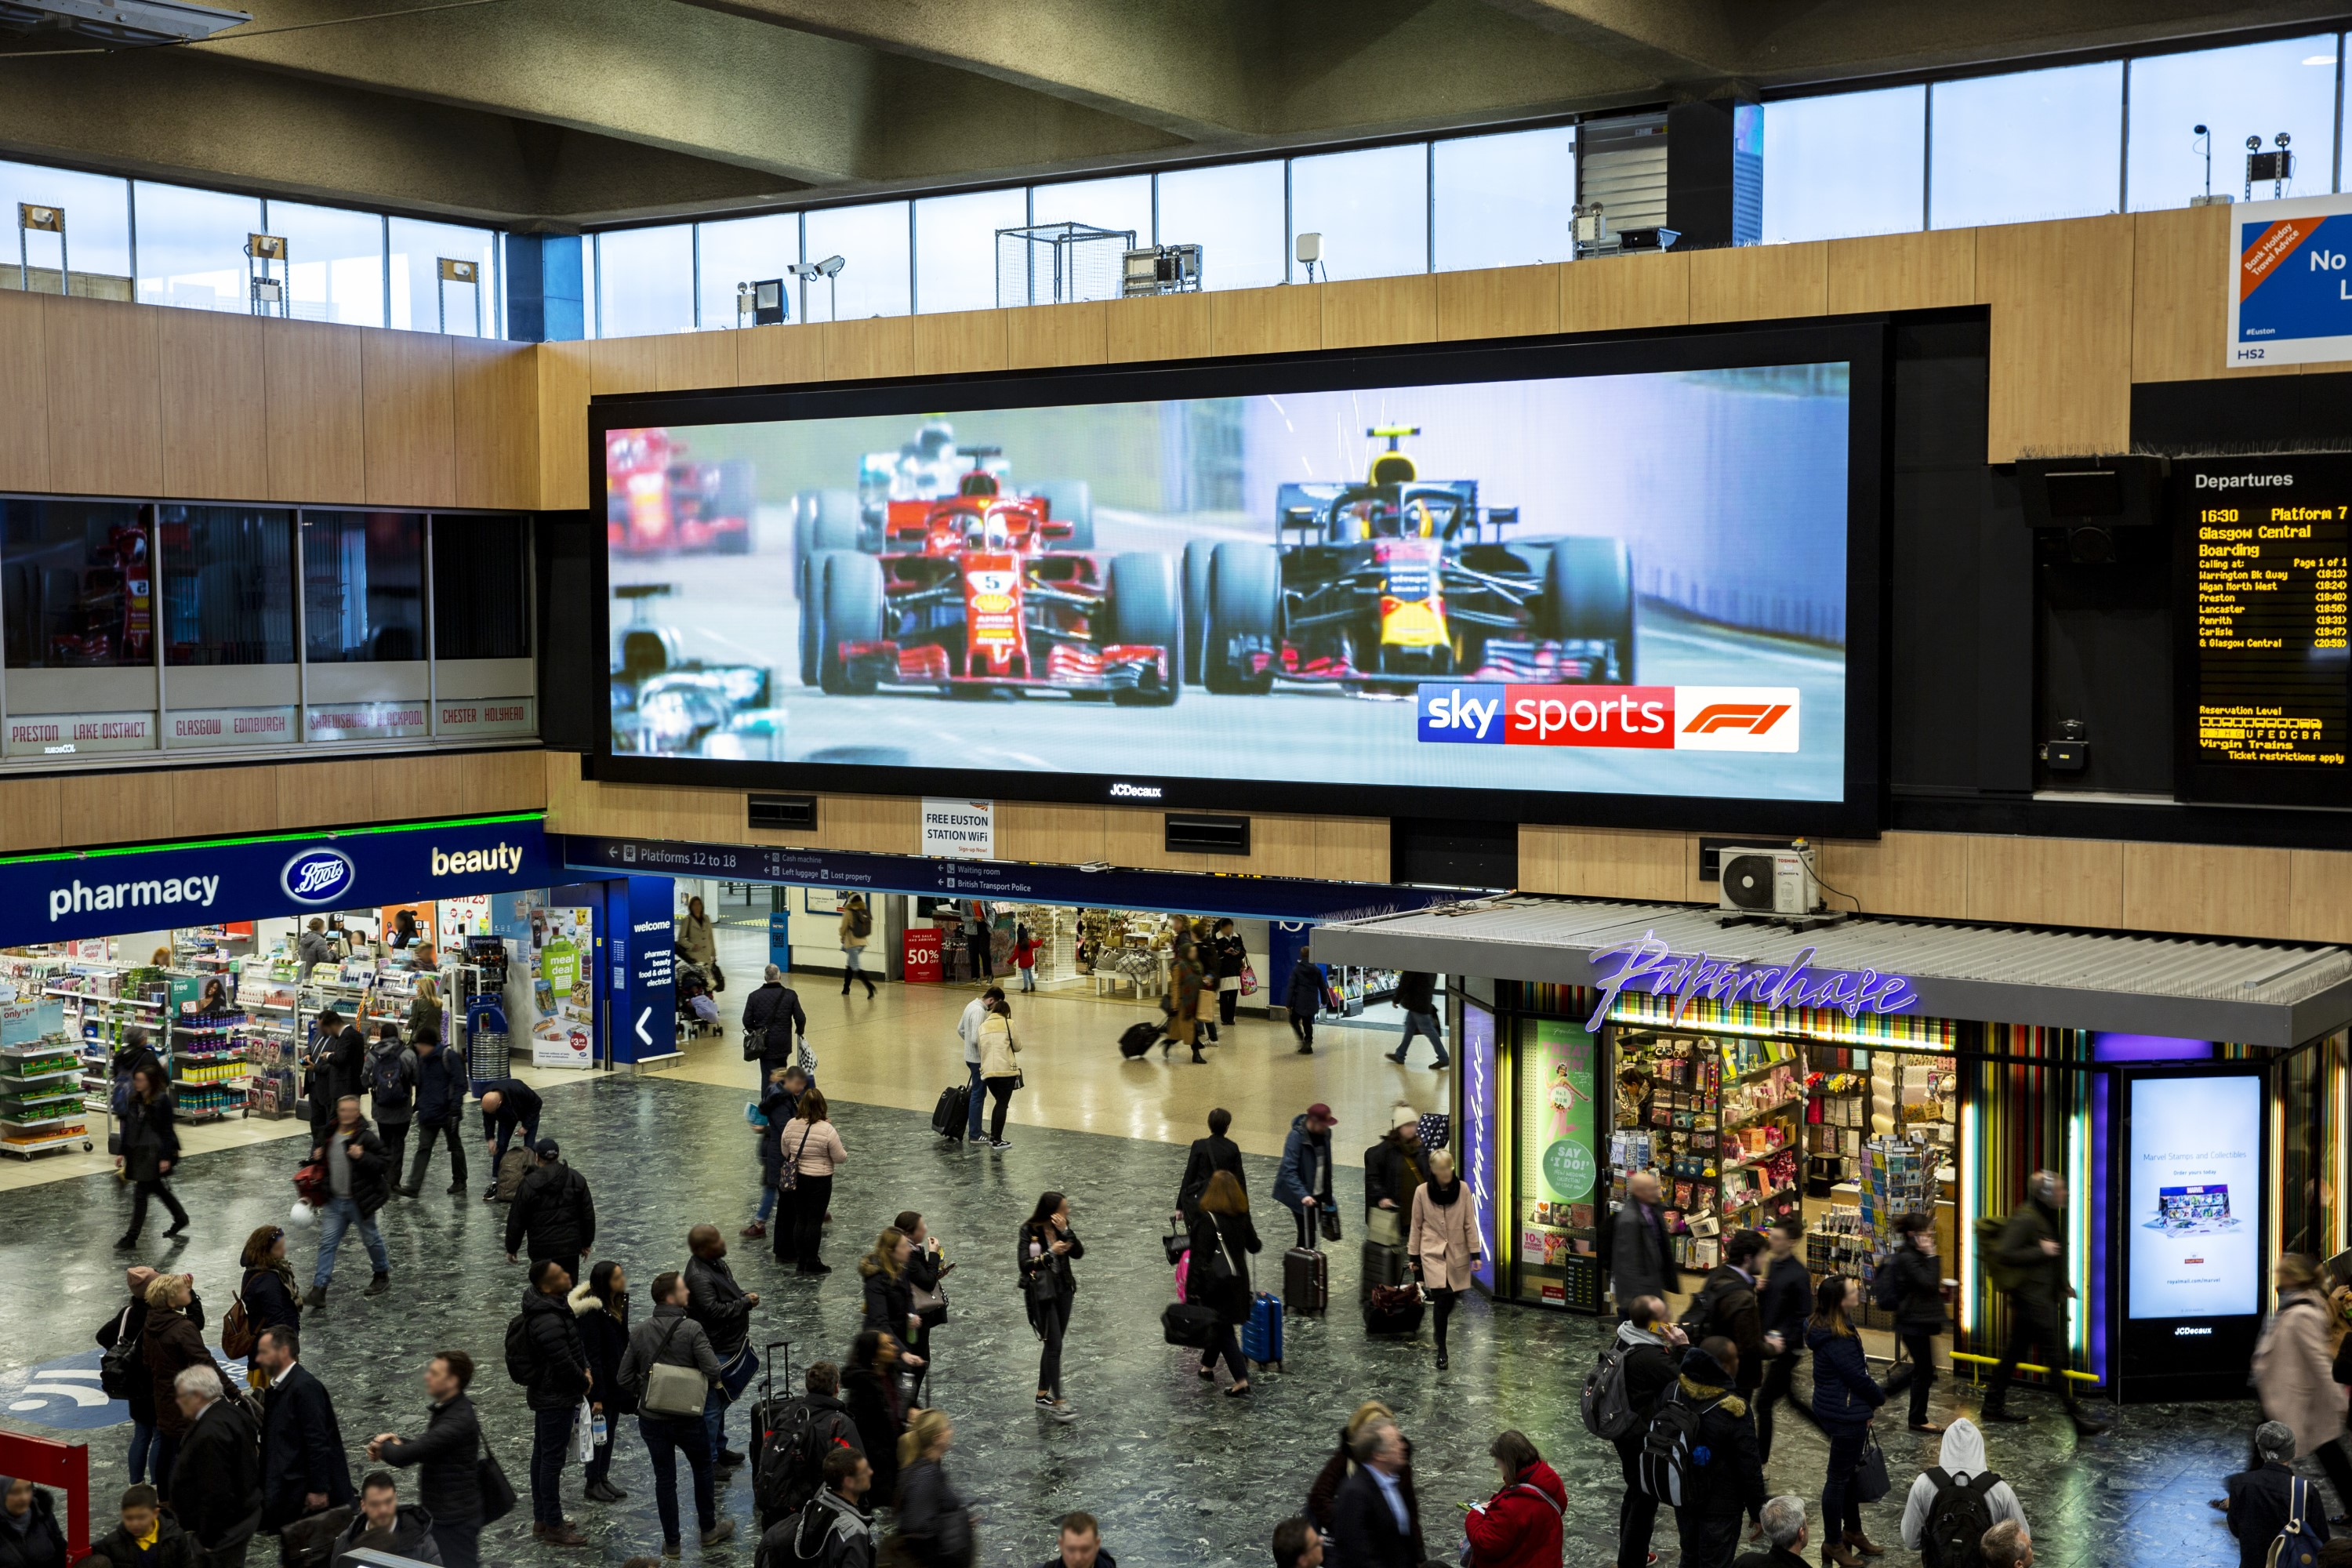 Q1 2019 sees OOH grow by 6.8%